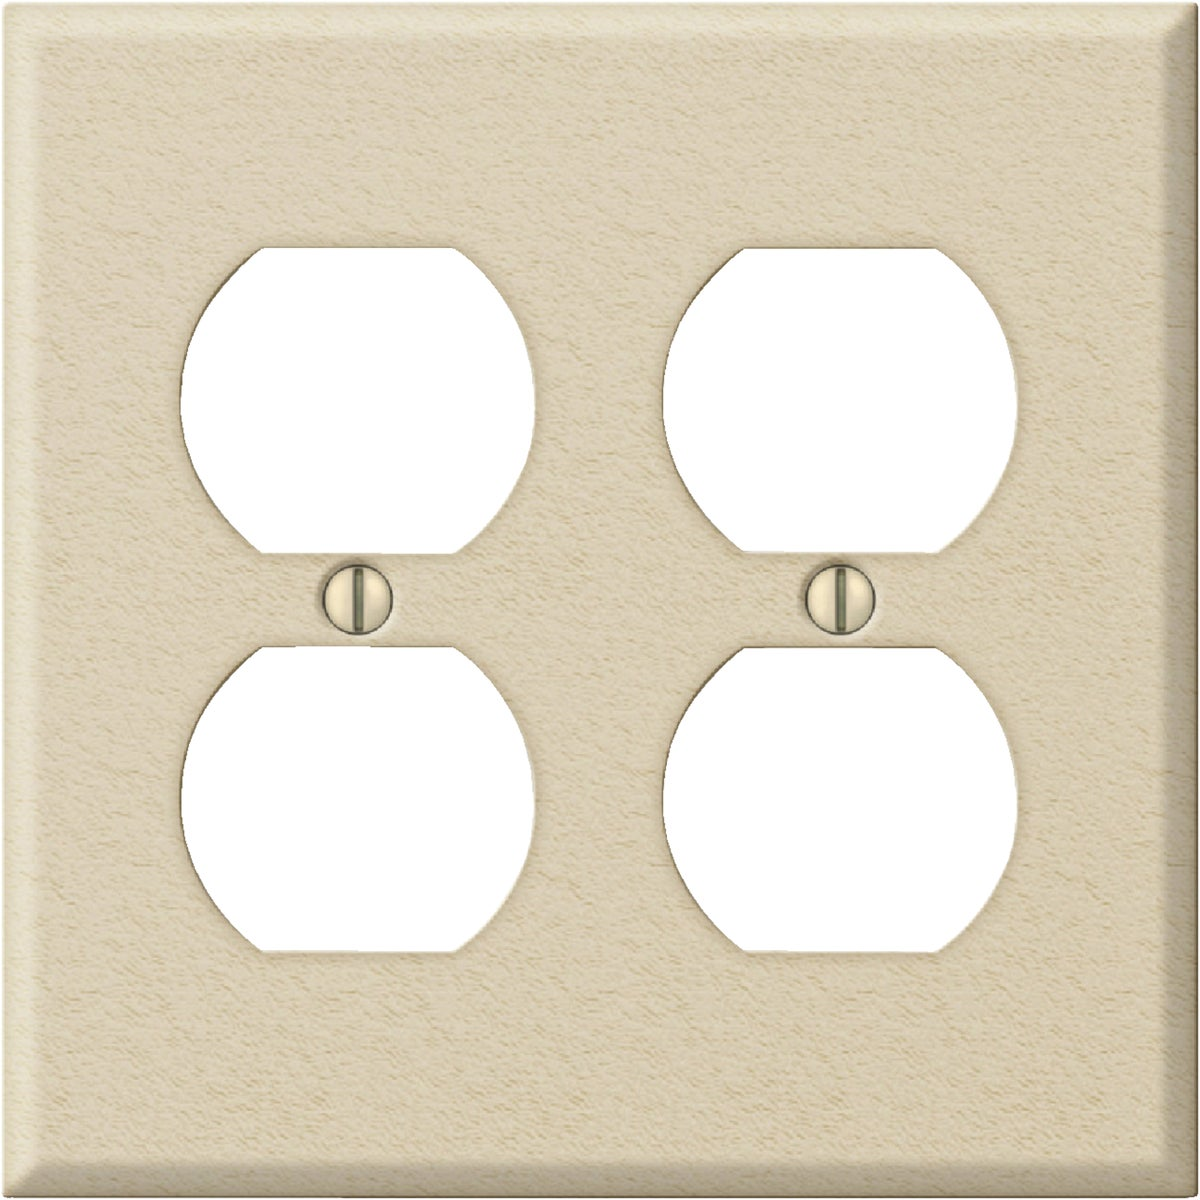 IV DBL OUTLET WALL PLATE